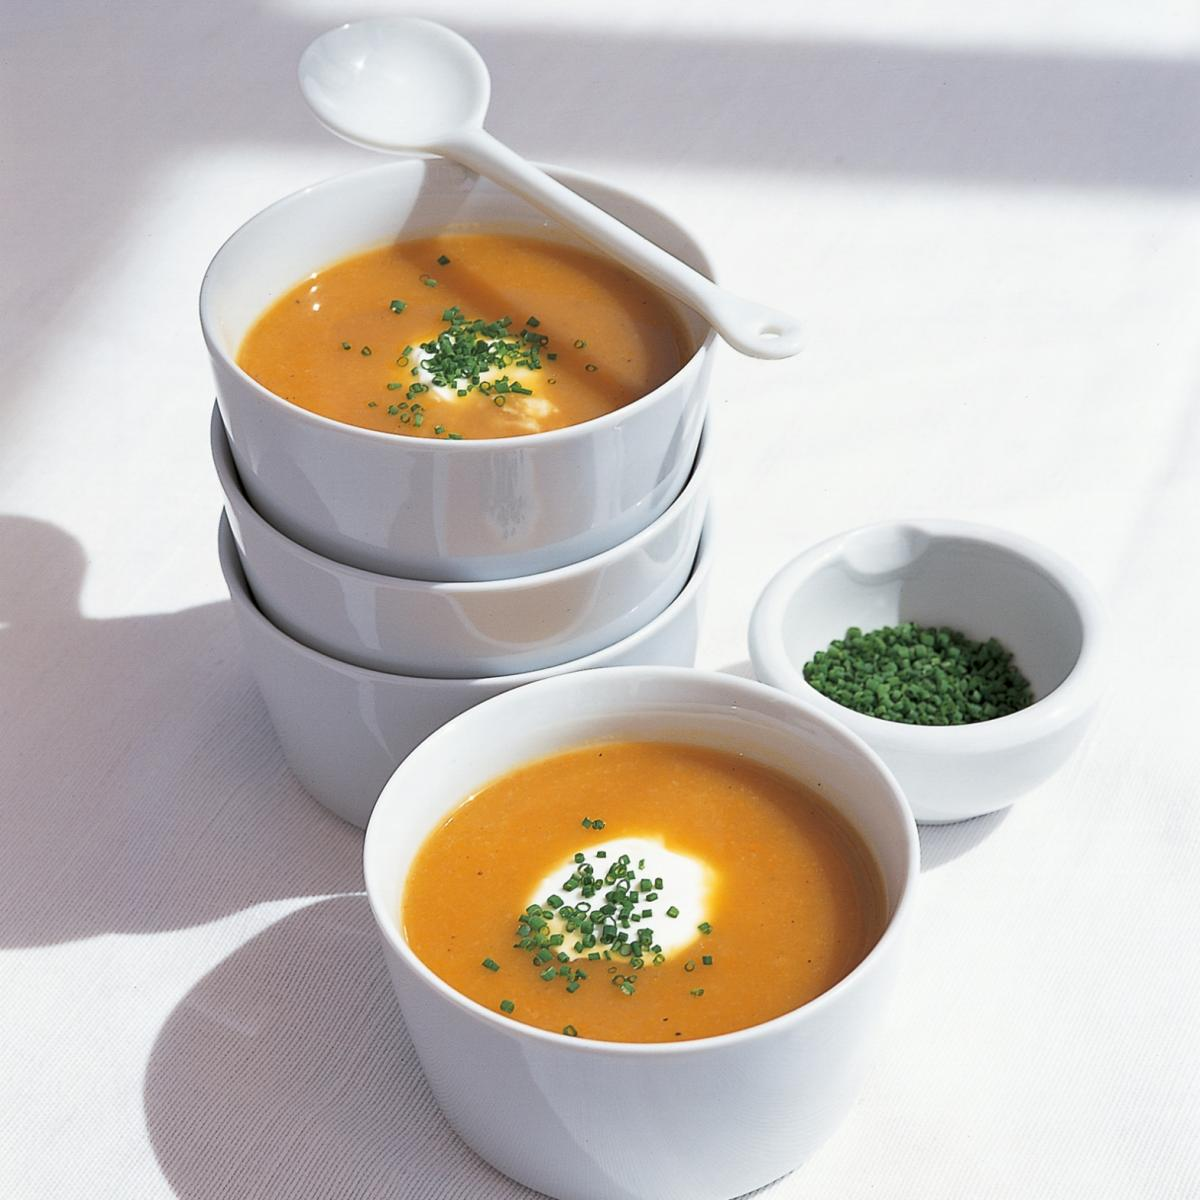 Slow-cooked Root Vegetable Soup